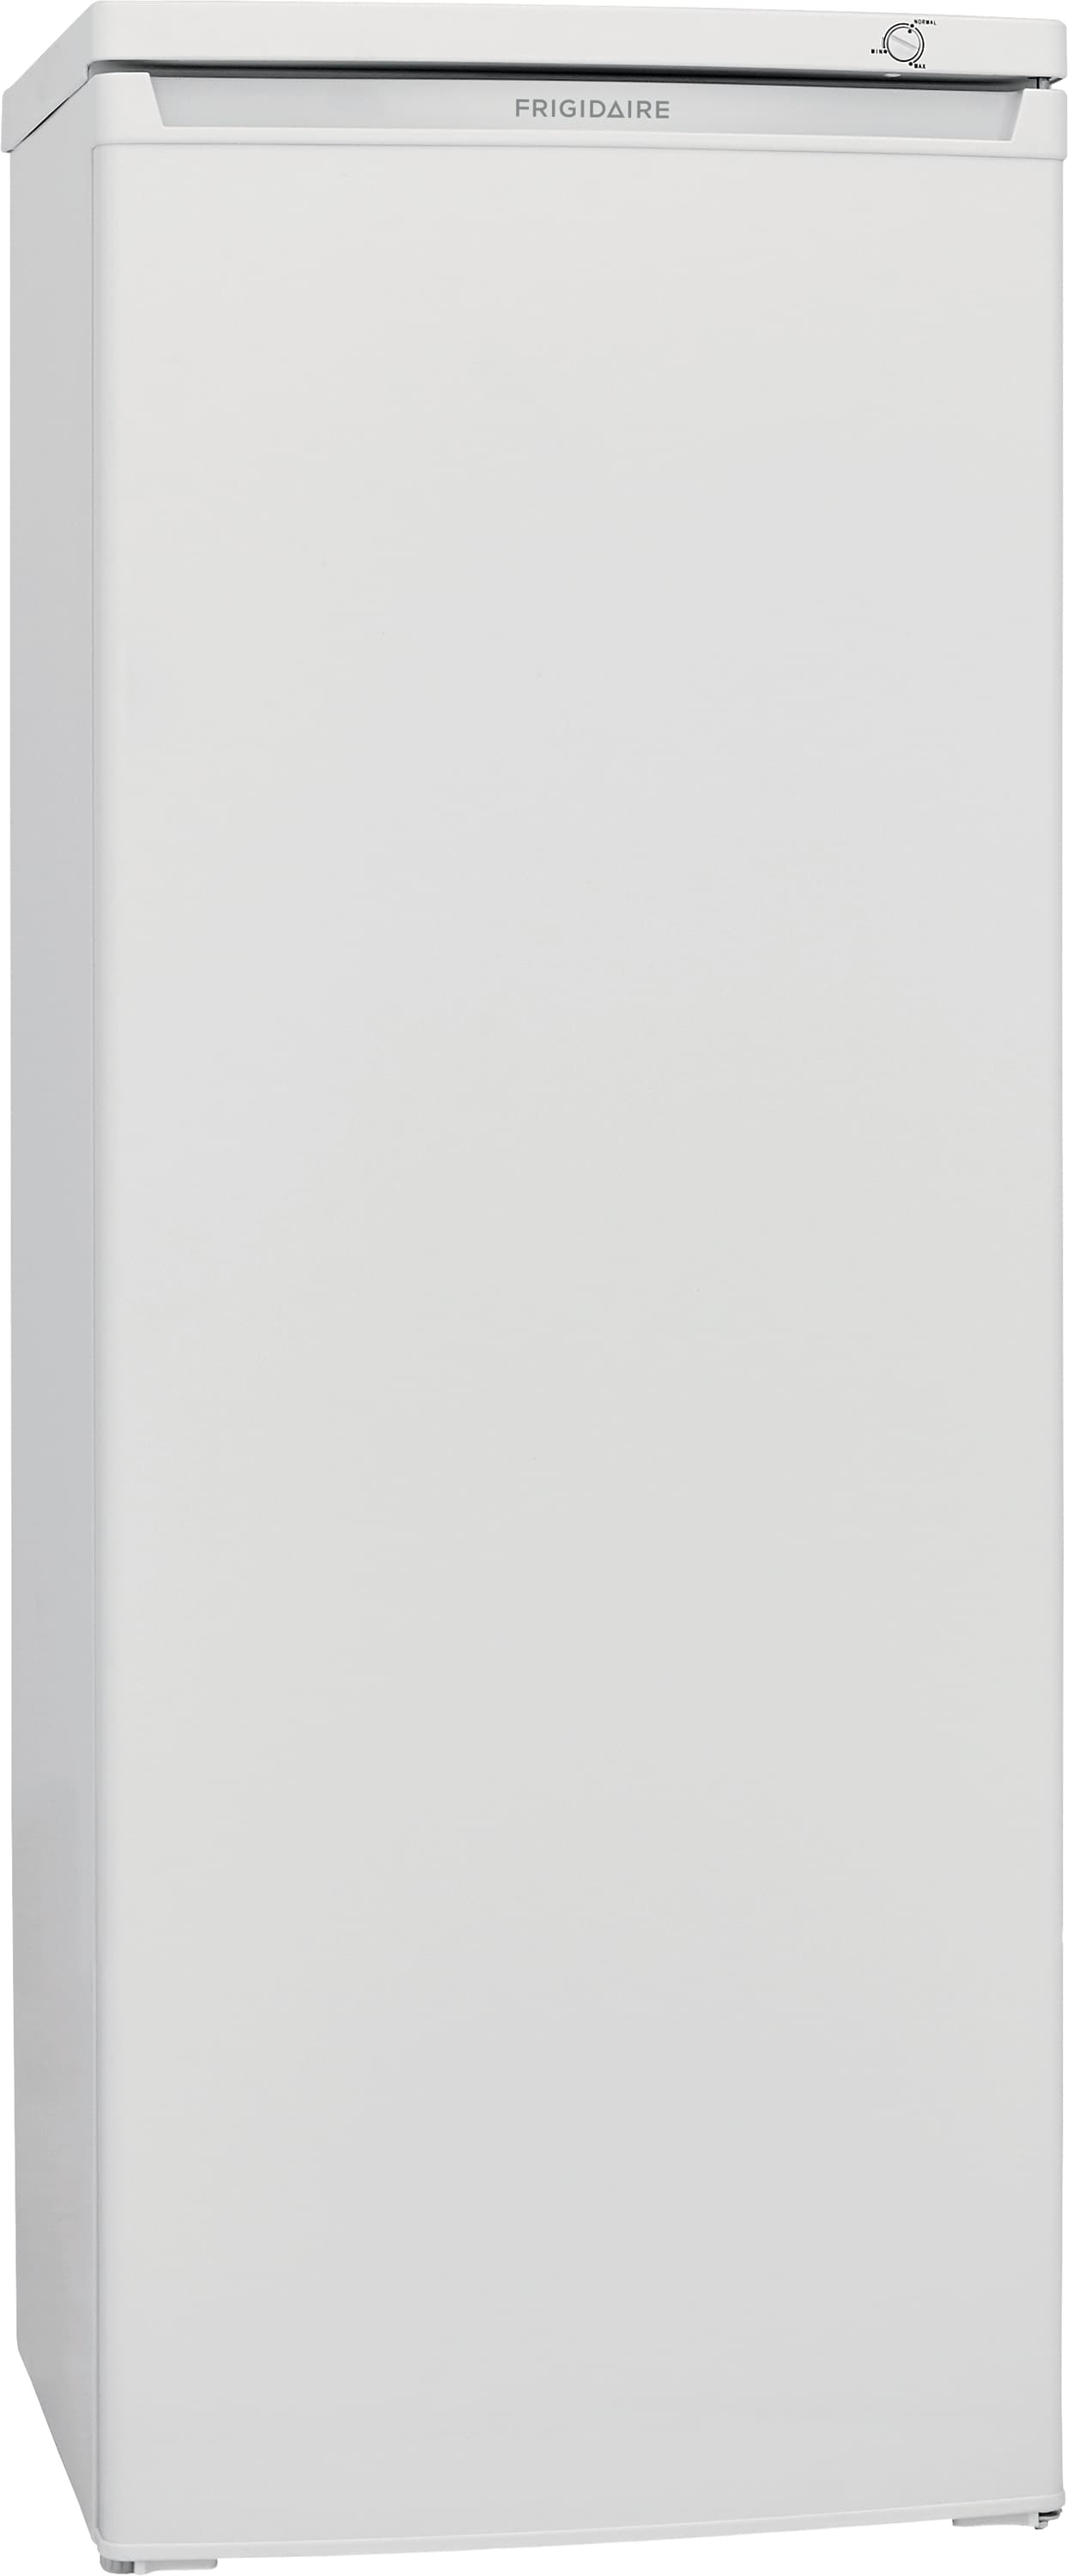 6 Cu. Ft. Upright Freezer